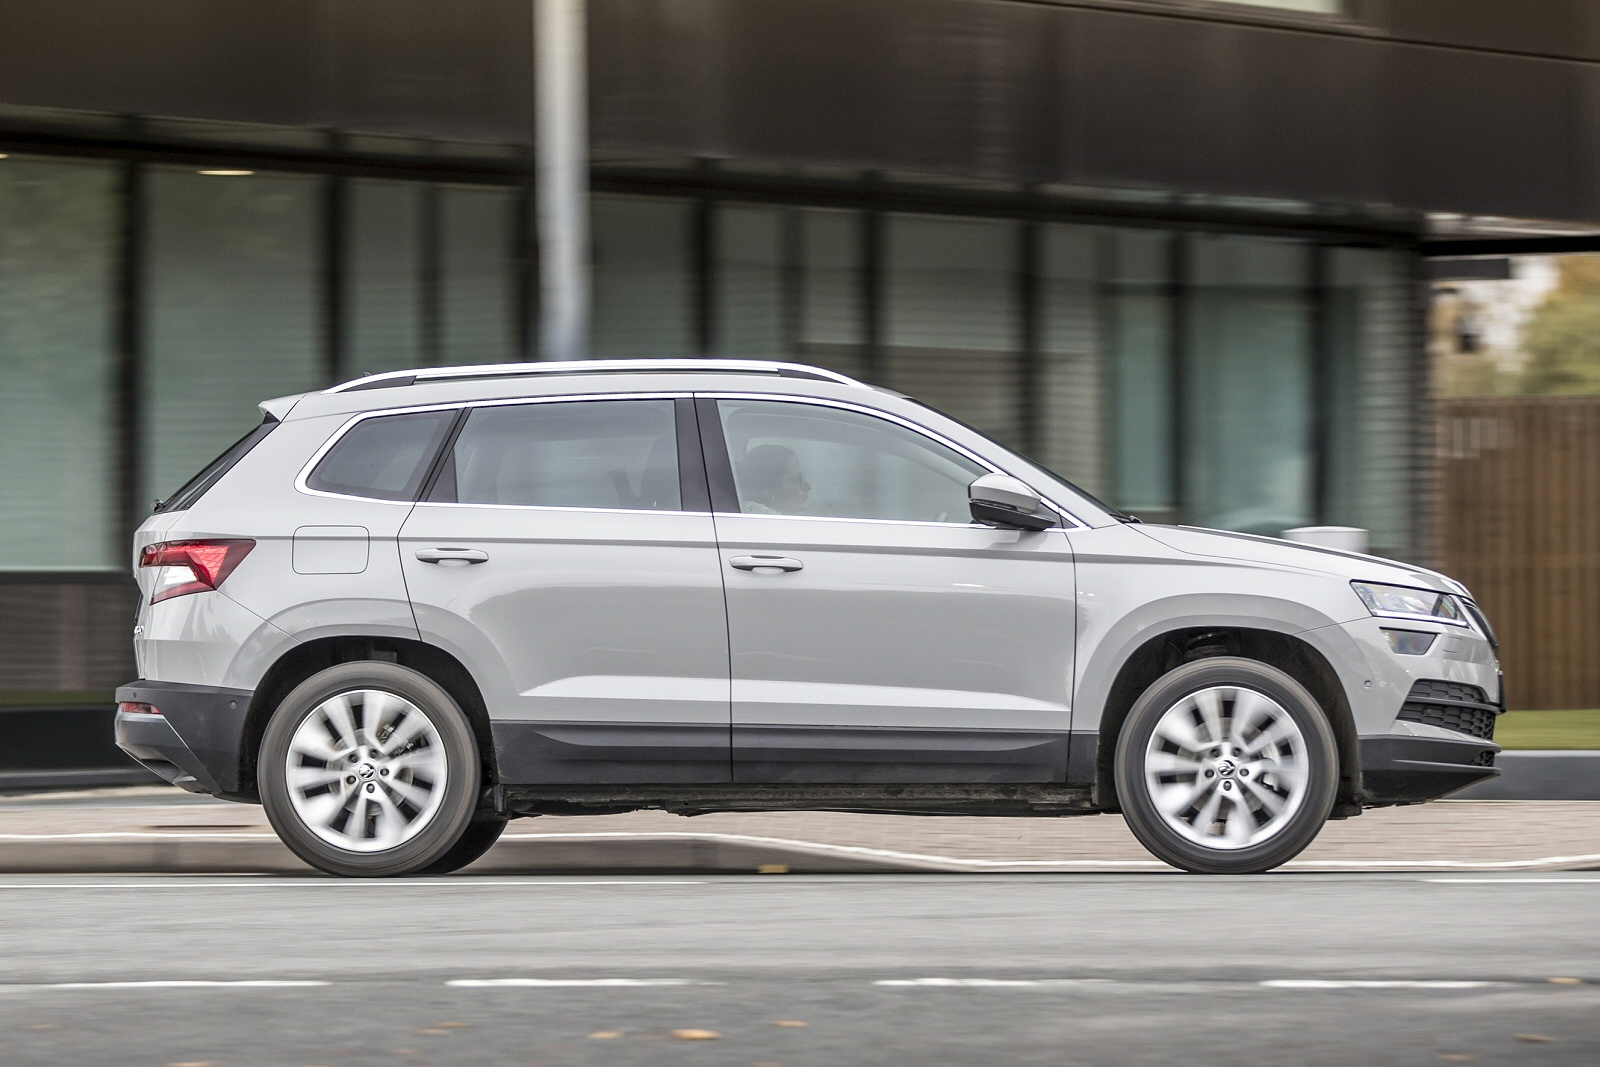 new skoda karoq 2 0 tdi se technology 4x4 5dr diesel estate for sale bristol street. Black Bedroom Furniture Sets. Home Design Ideas